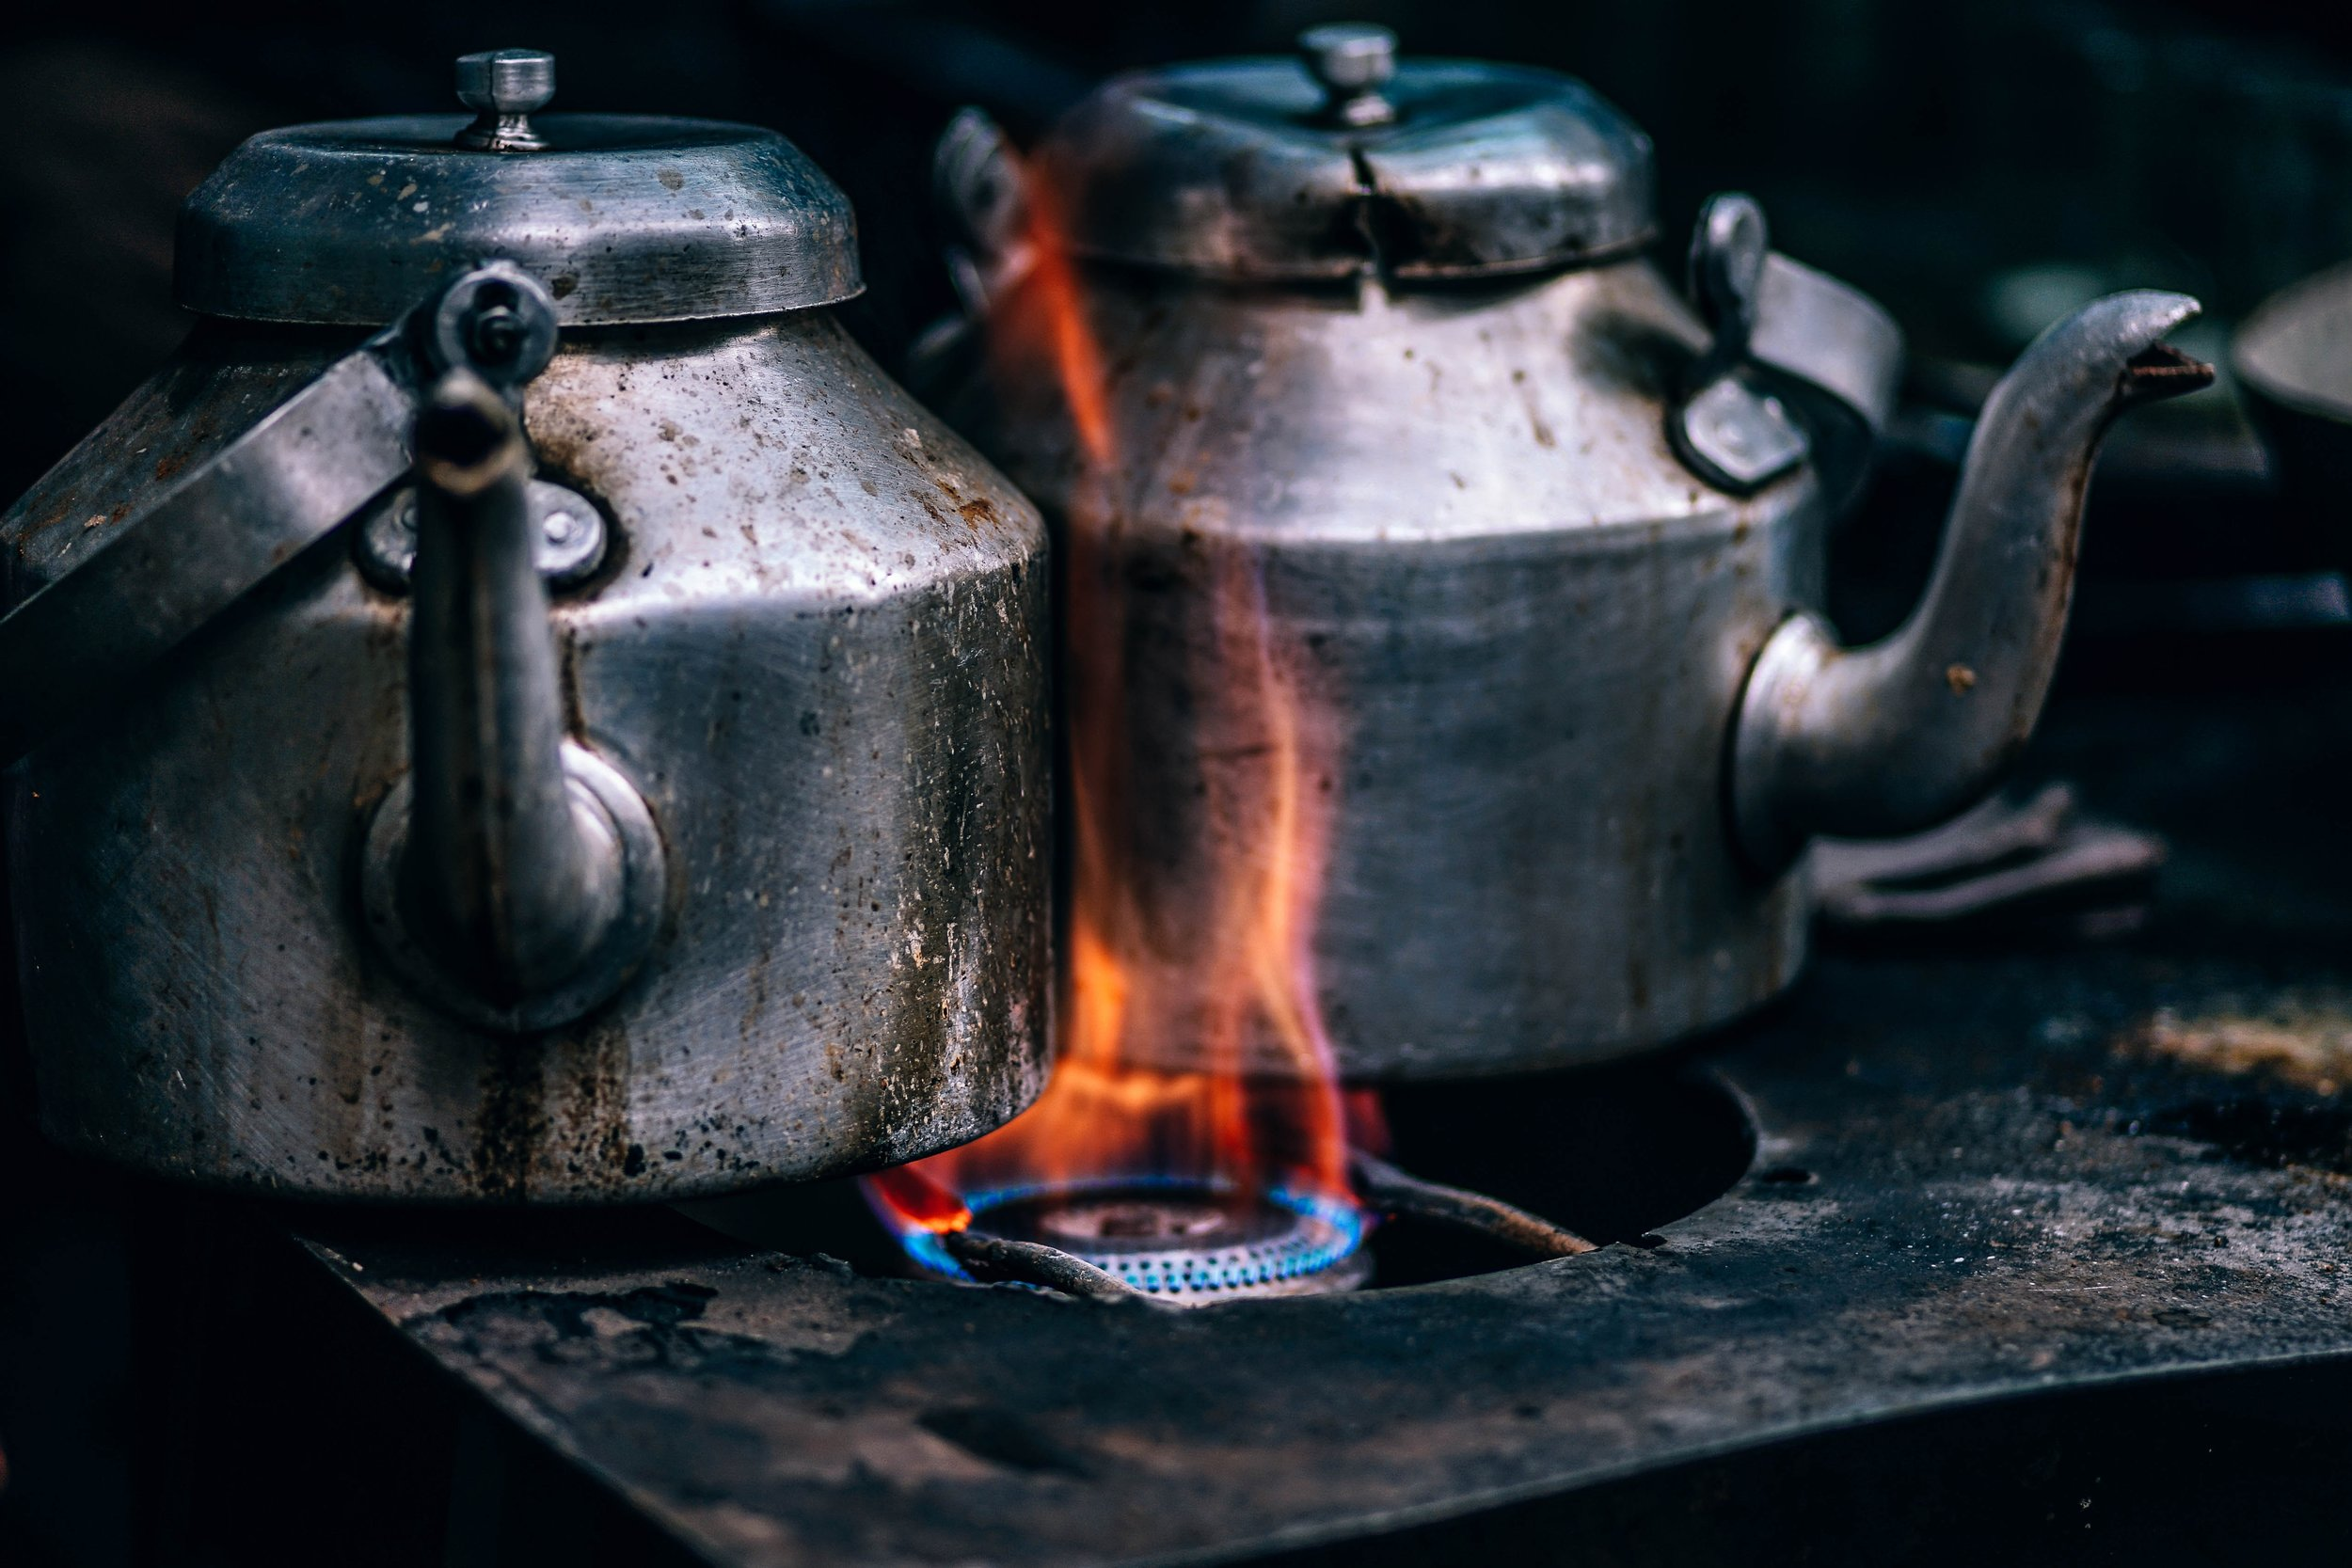 boiling Indian chai on stovetop.jpg